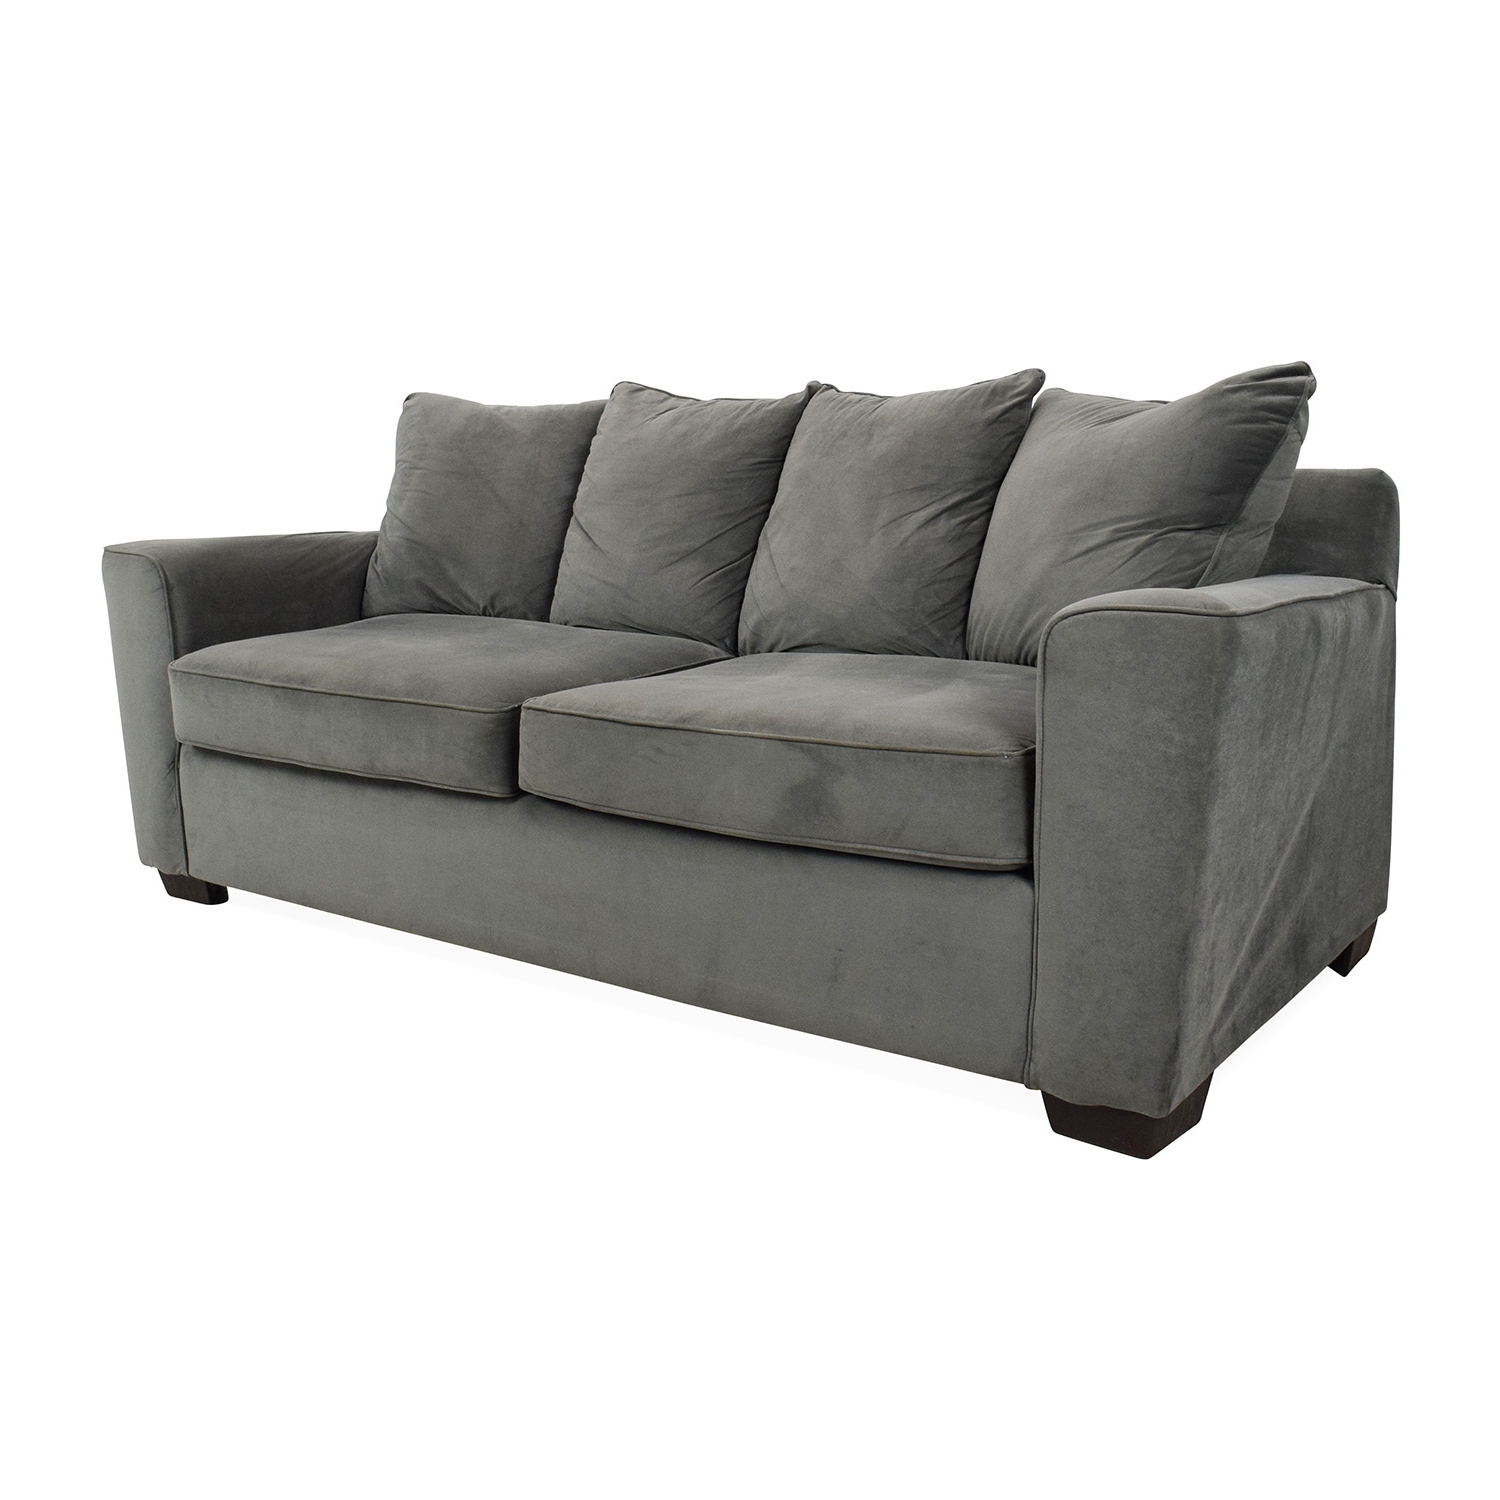 [%53% Off – Jennifer Convertibles Jennifer Convertibles Grey Couch Within Well Liked Jennifer Sofas|Jennifer Sofas Regarding Fashionable 53% Off – Jennifer Convertibles Jennifer Convertibles Grey Couch|Current Jennifer Sofas Regarding 53% Off – Jennifer Convertibles Jennifer Convertibles Grey Couch|Most Up To Date 53% Off – Jennifer Convertibles Jennifer Convertibles Grey Couch With Jennifer Sofas%] (View 14 of 15)